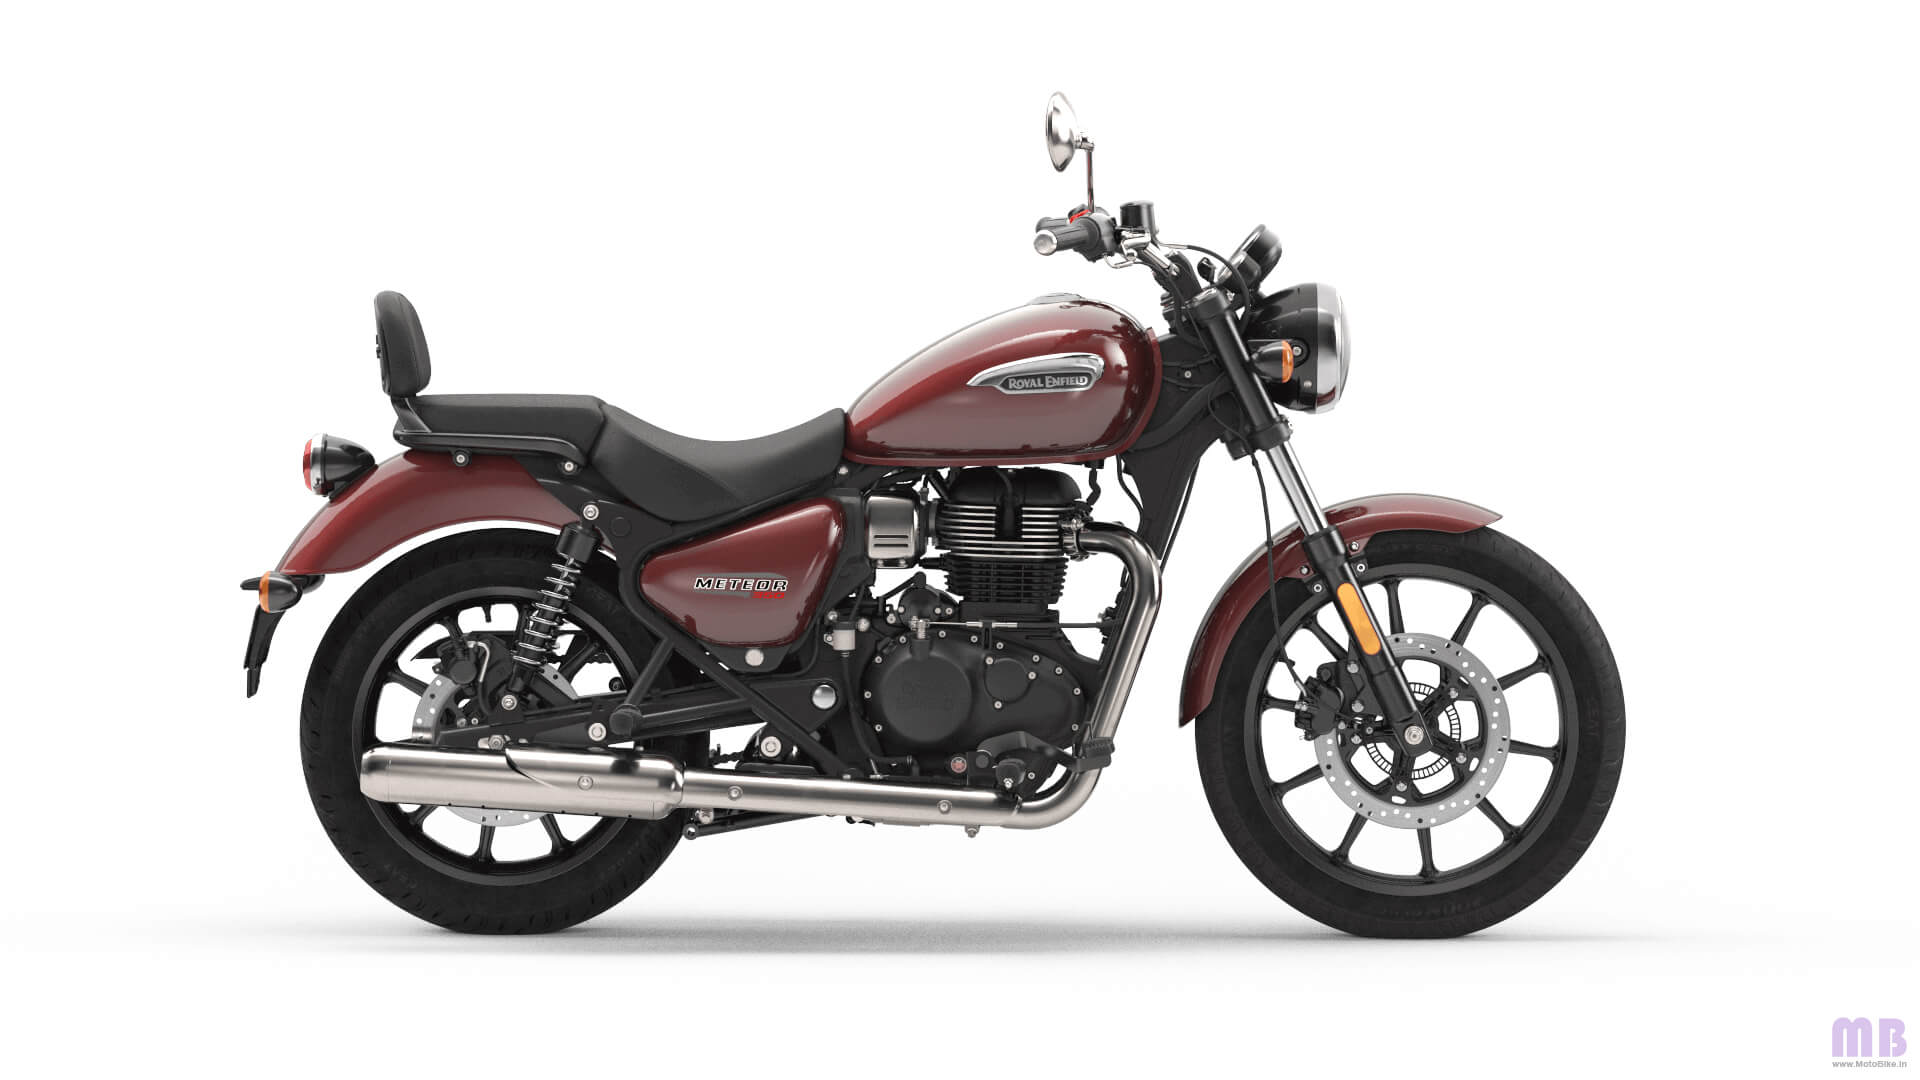 Royal Enfield Meteor 350 - Stellar Red